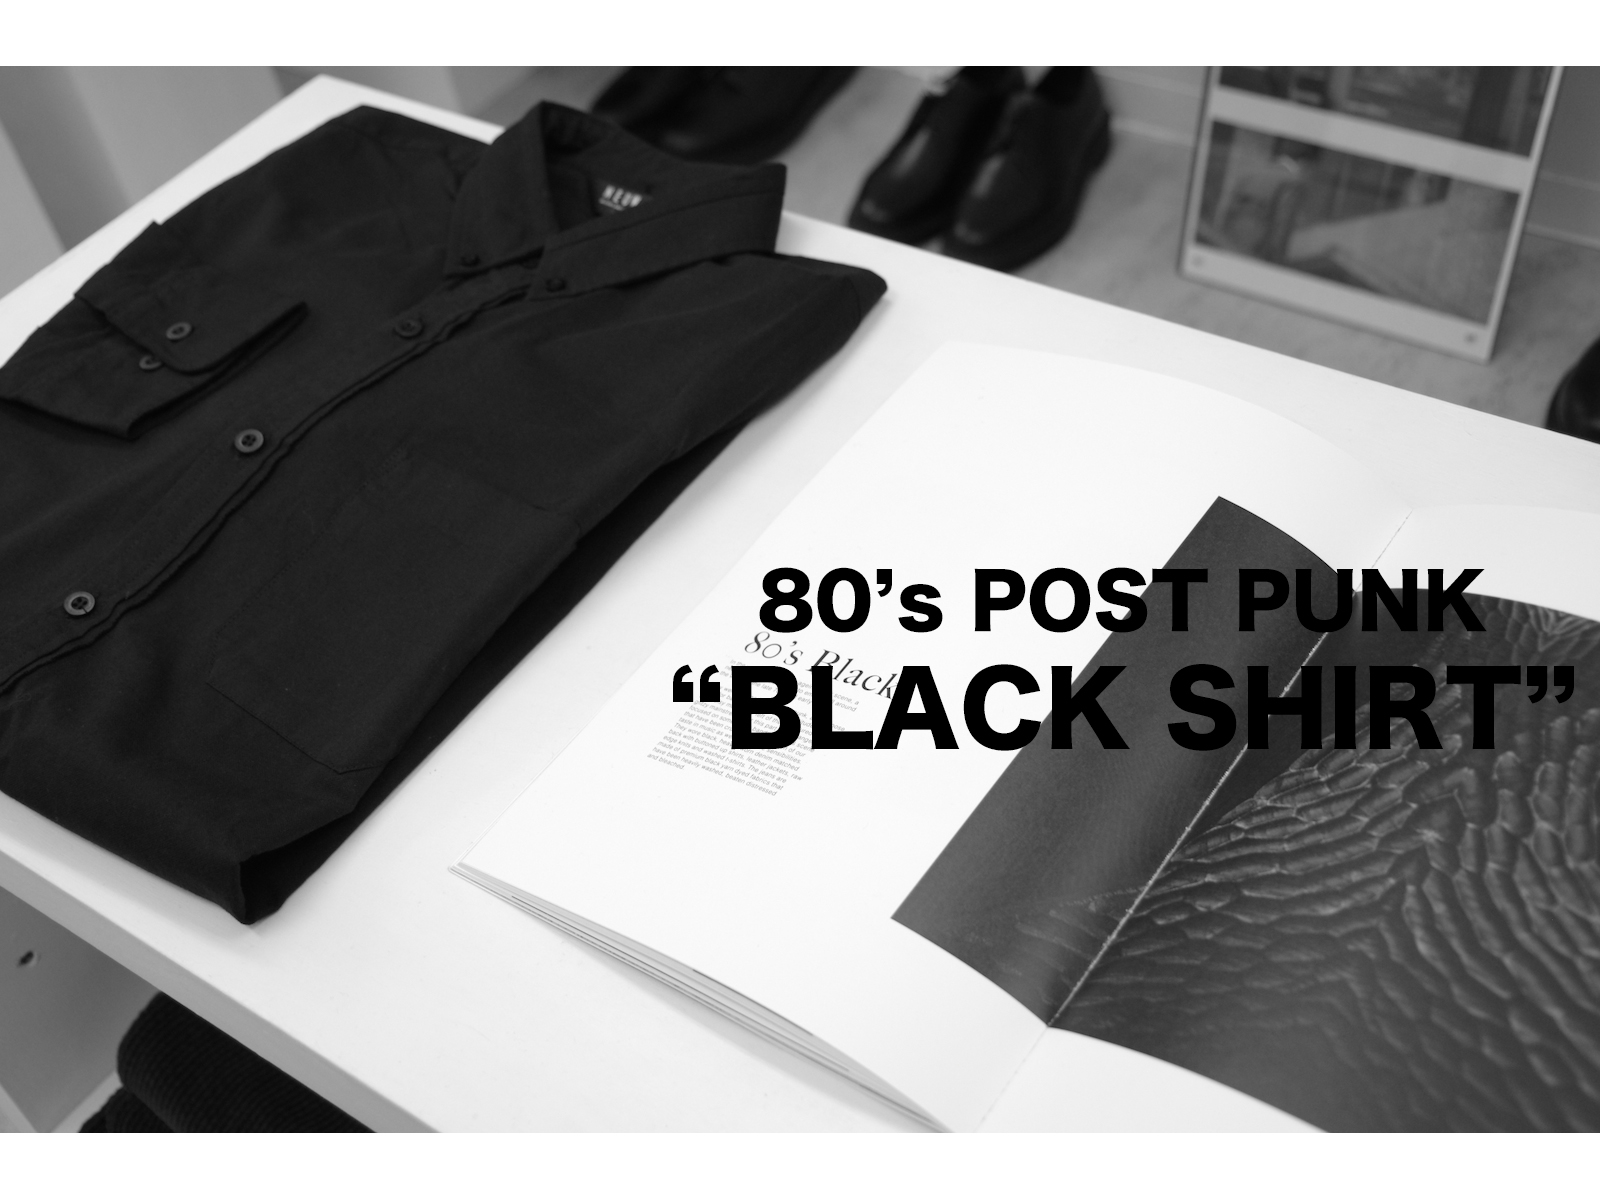 NEUW DENIM – 80's POST PUNK BLACK SHIRT